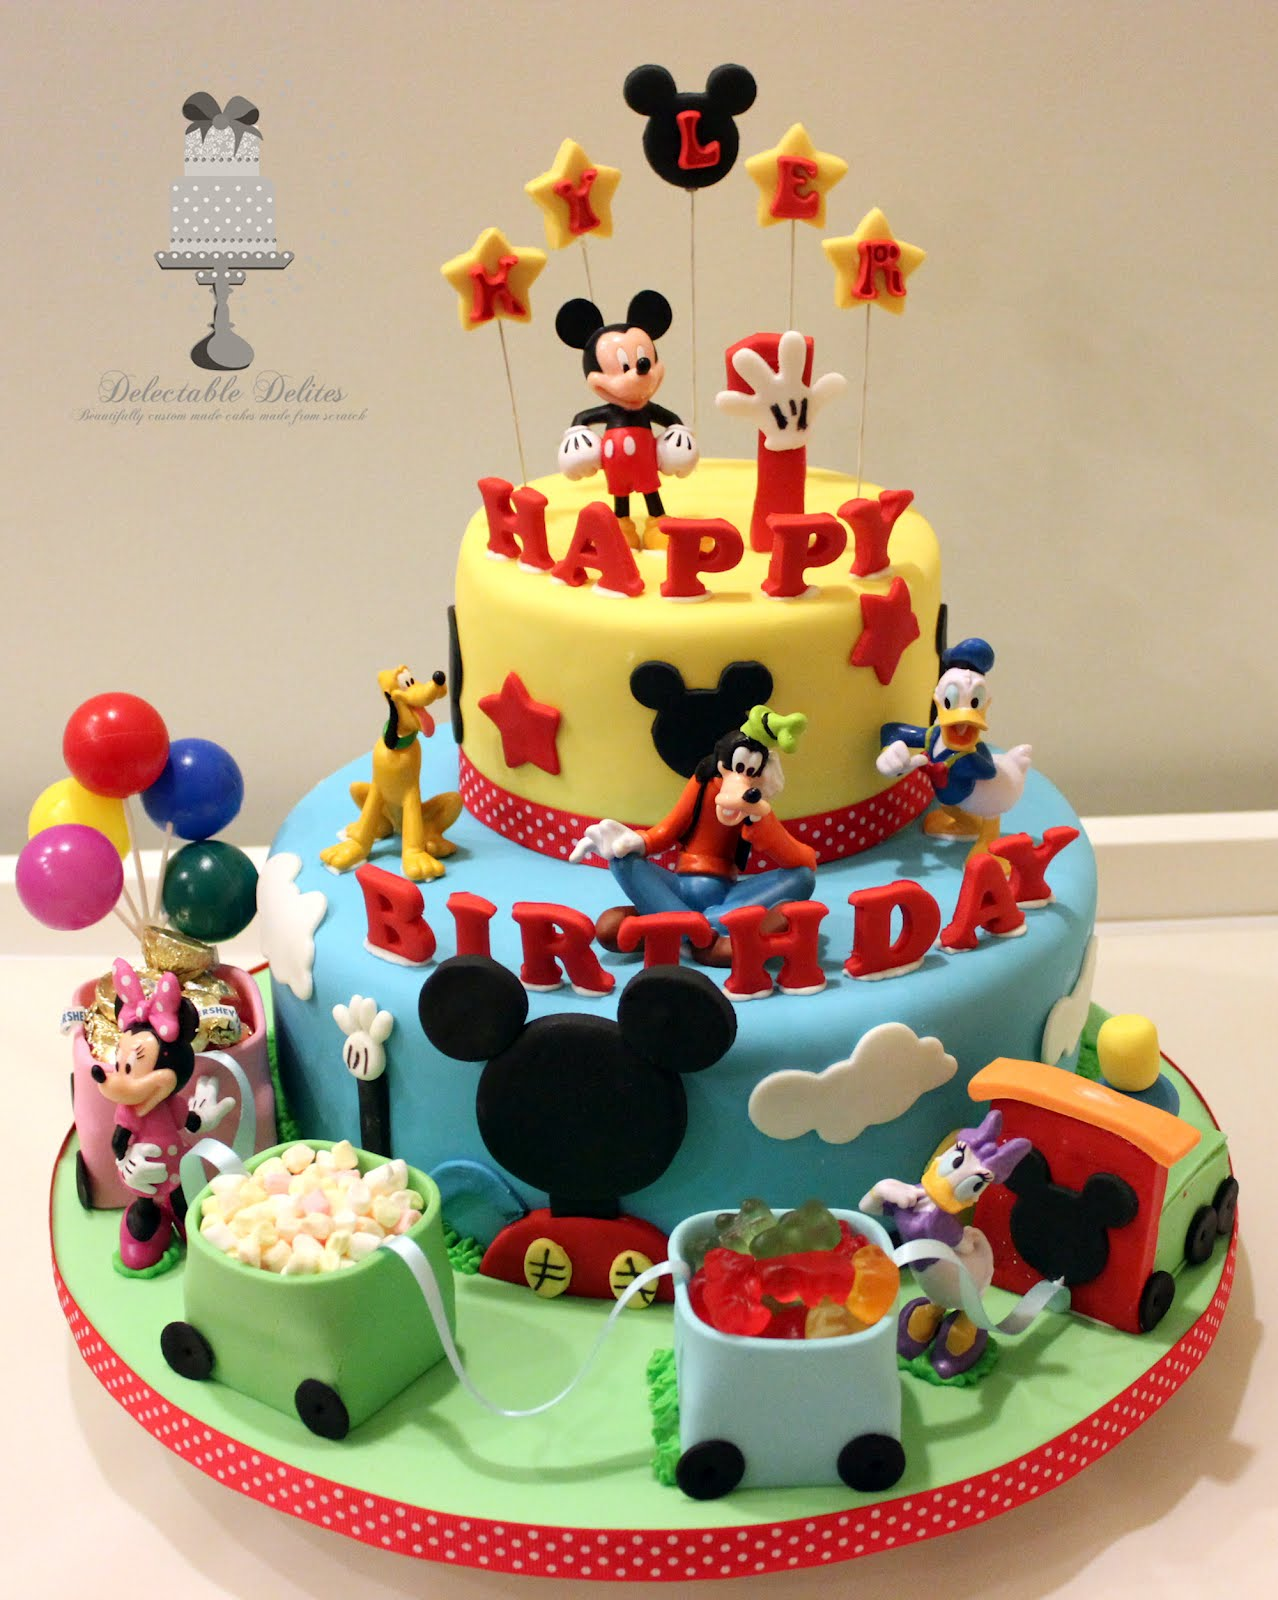 Delectable Delites Mickey Mouse Clubhouse With Train For Kylers